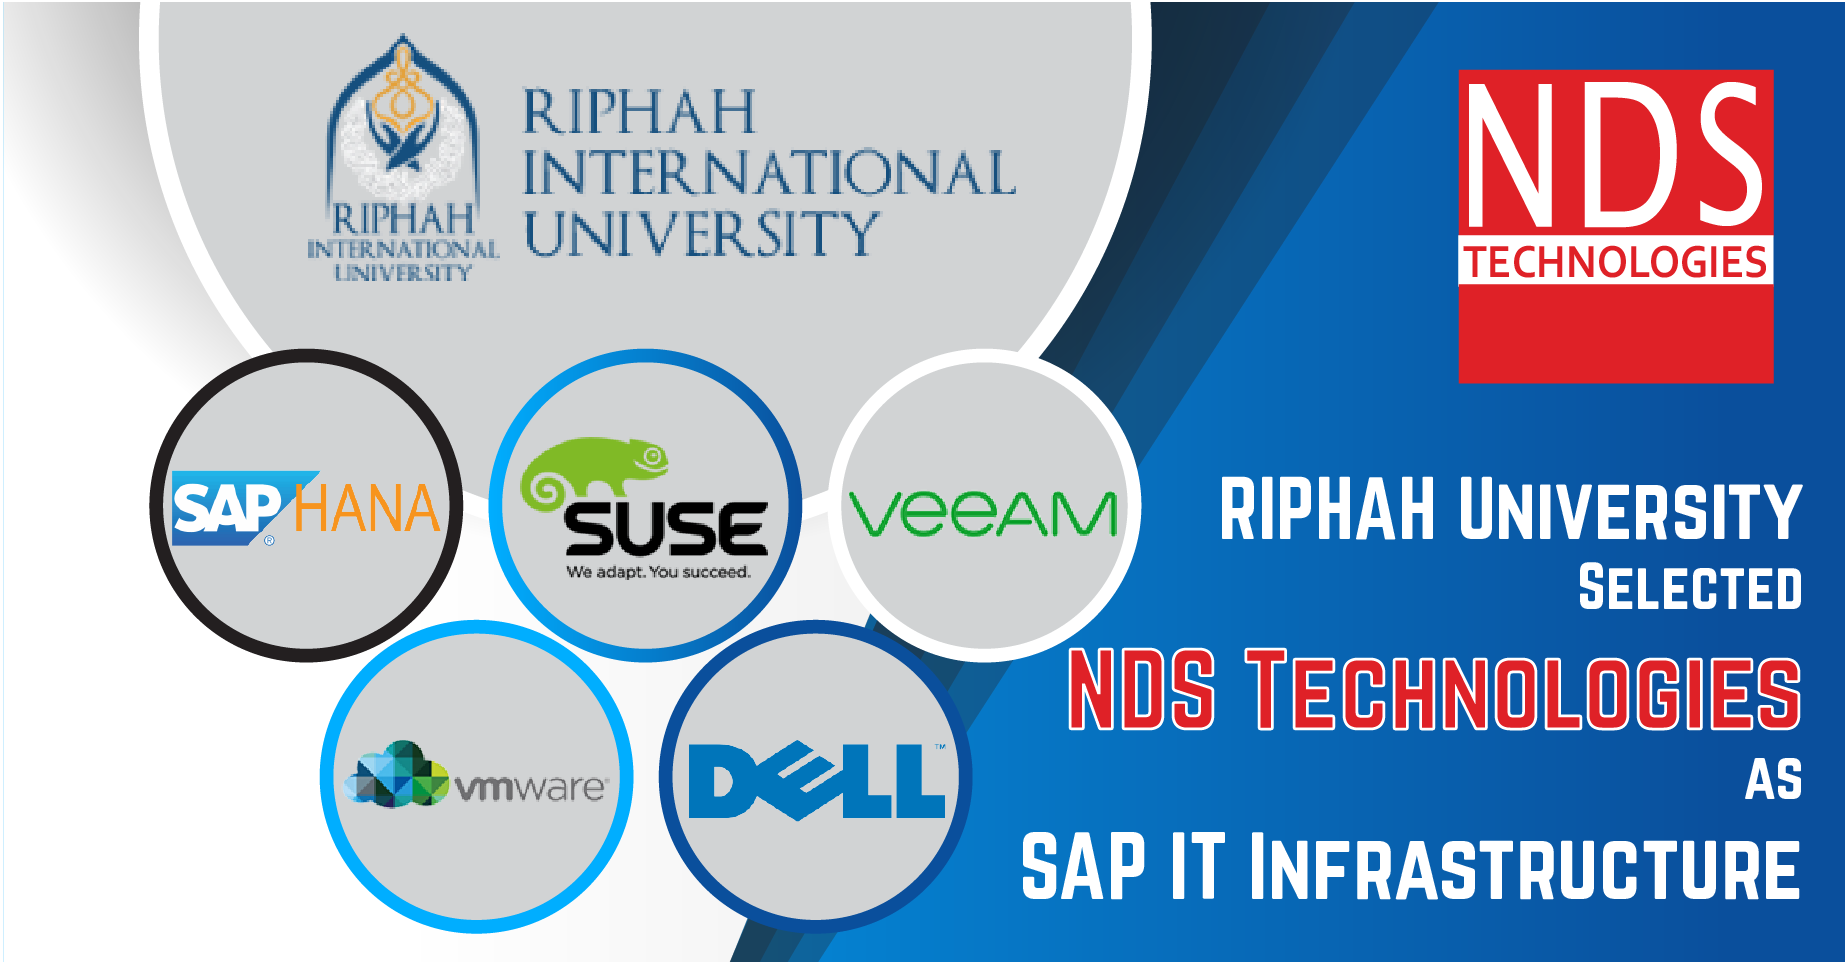 RIPHAH International University selected NDS Technologies as SAP IT infrastructure